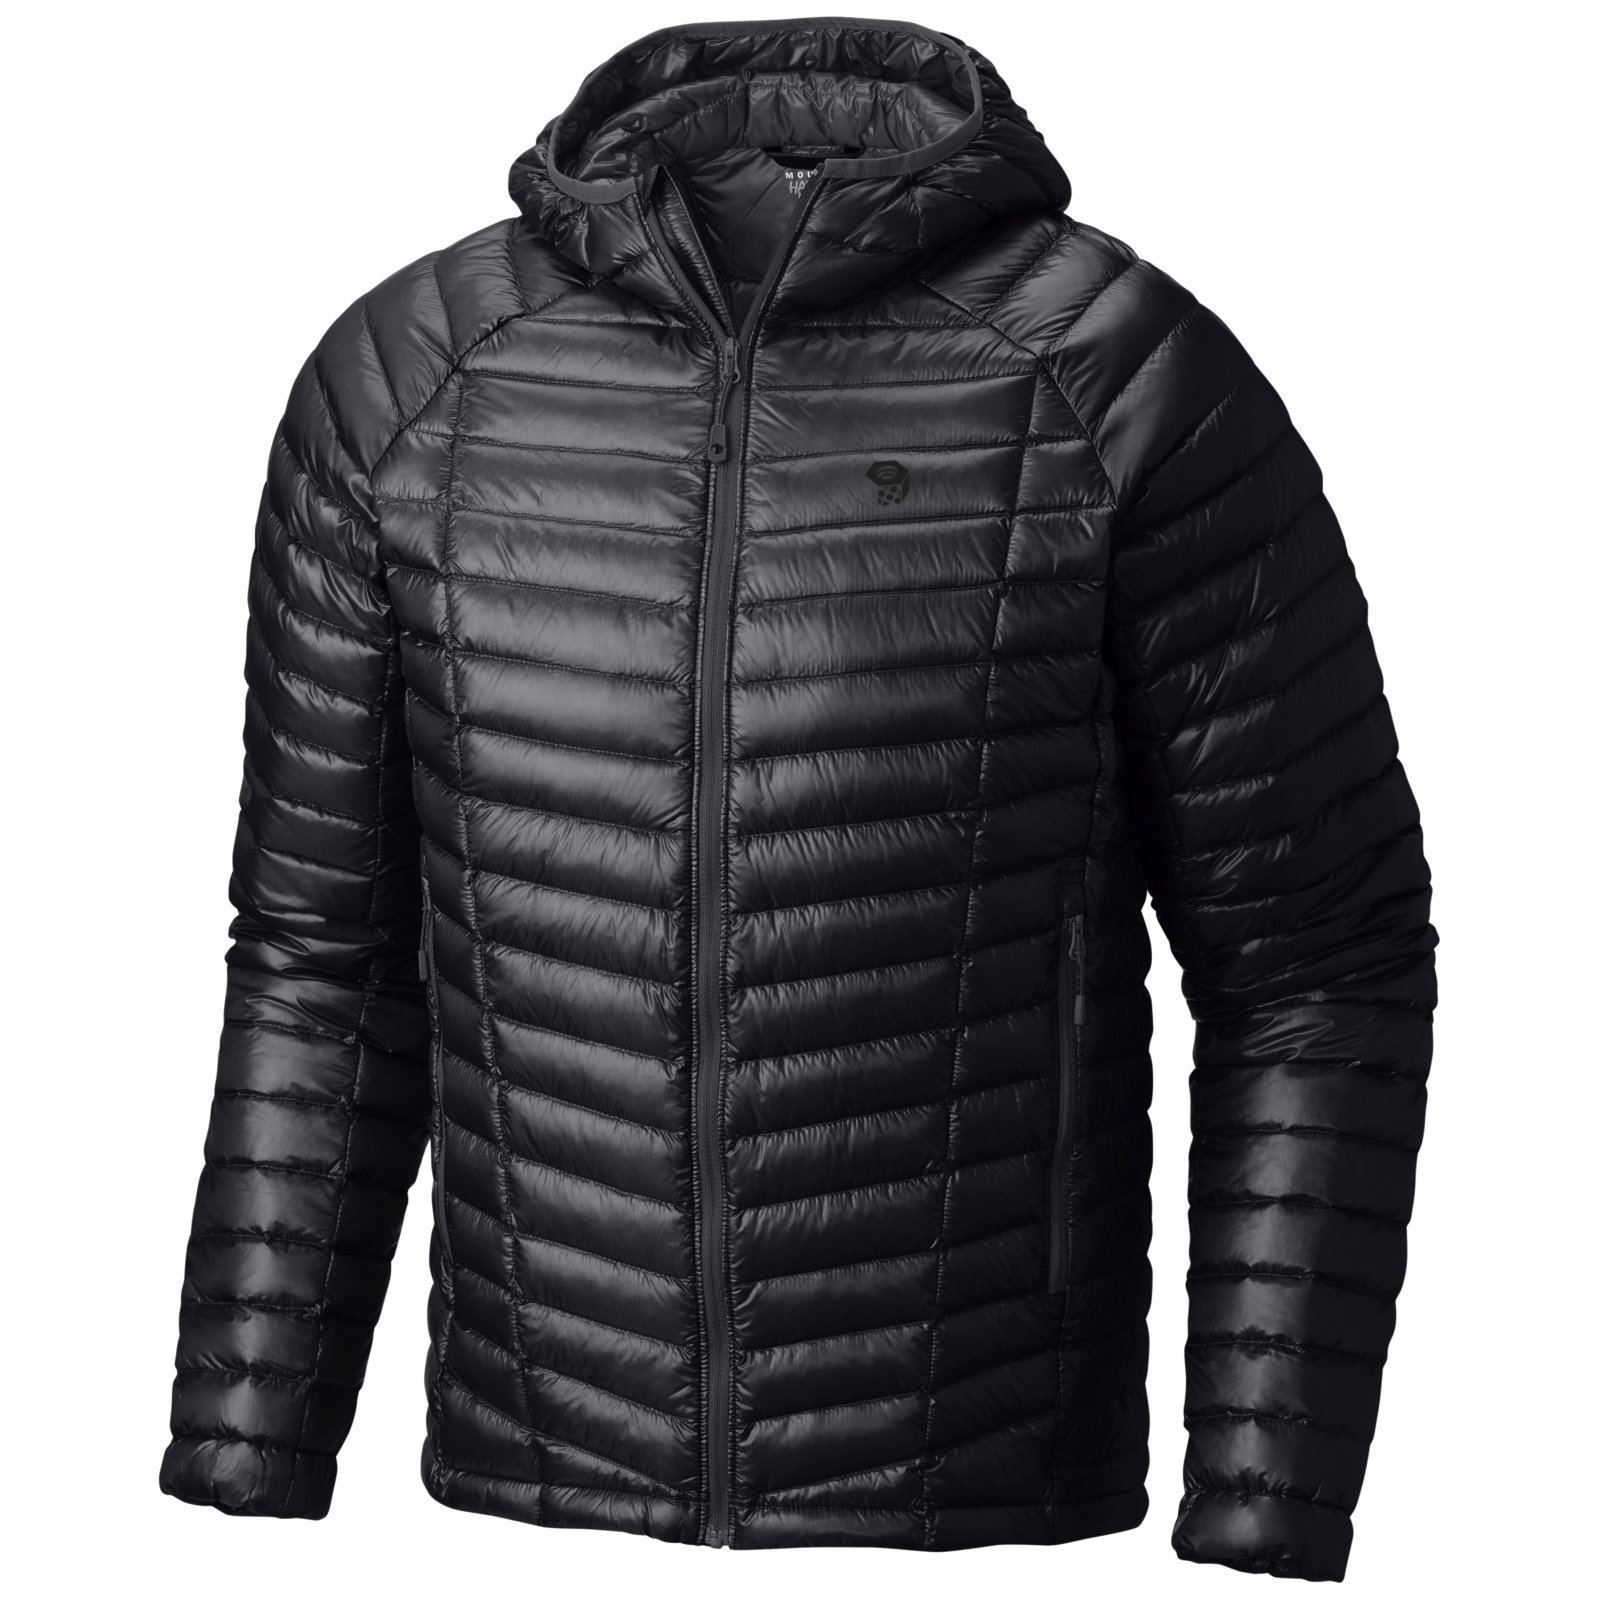 Mountain Hardwear Ghost Whisperer Down Hooded Jacket - Men's Black Small by Mountain Hardwear